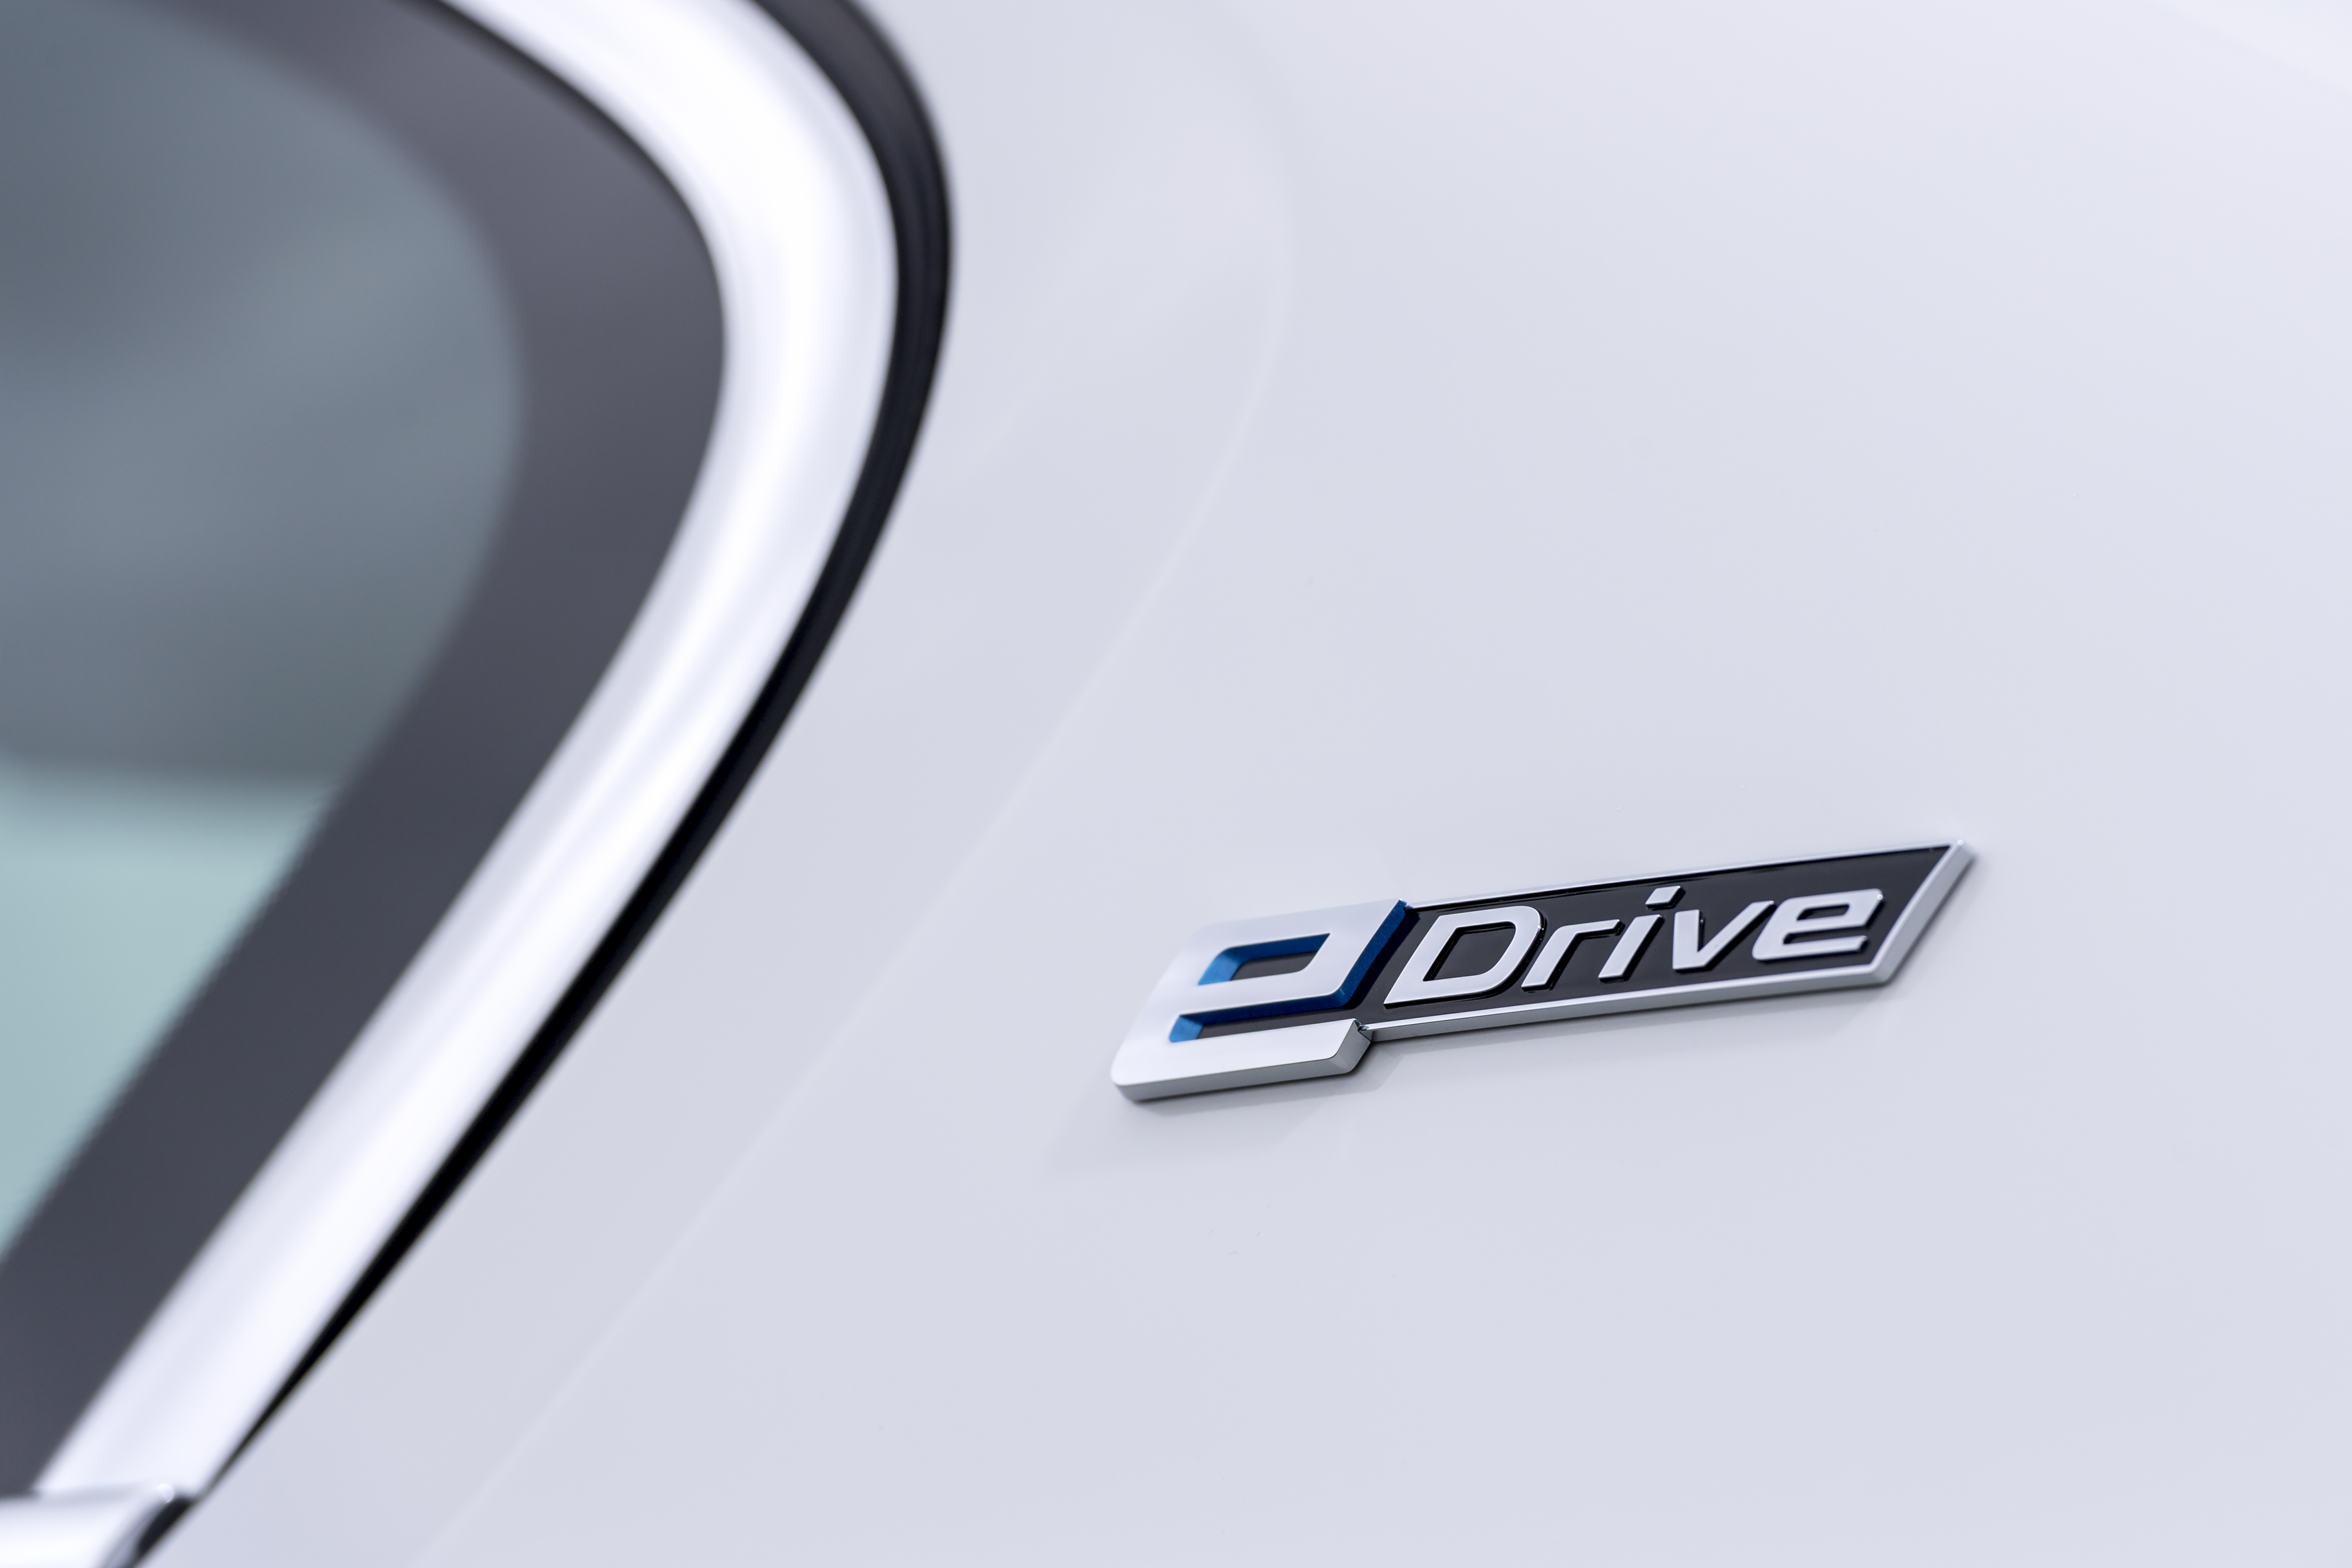 BMW Group remains world's Number One premium automotive company